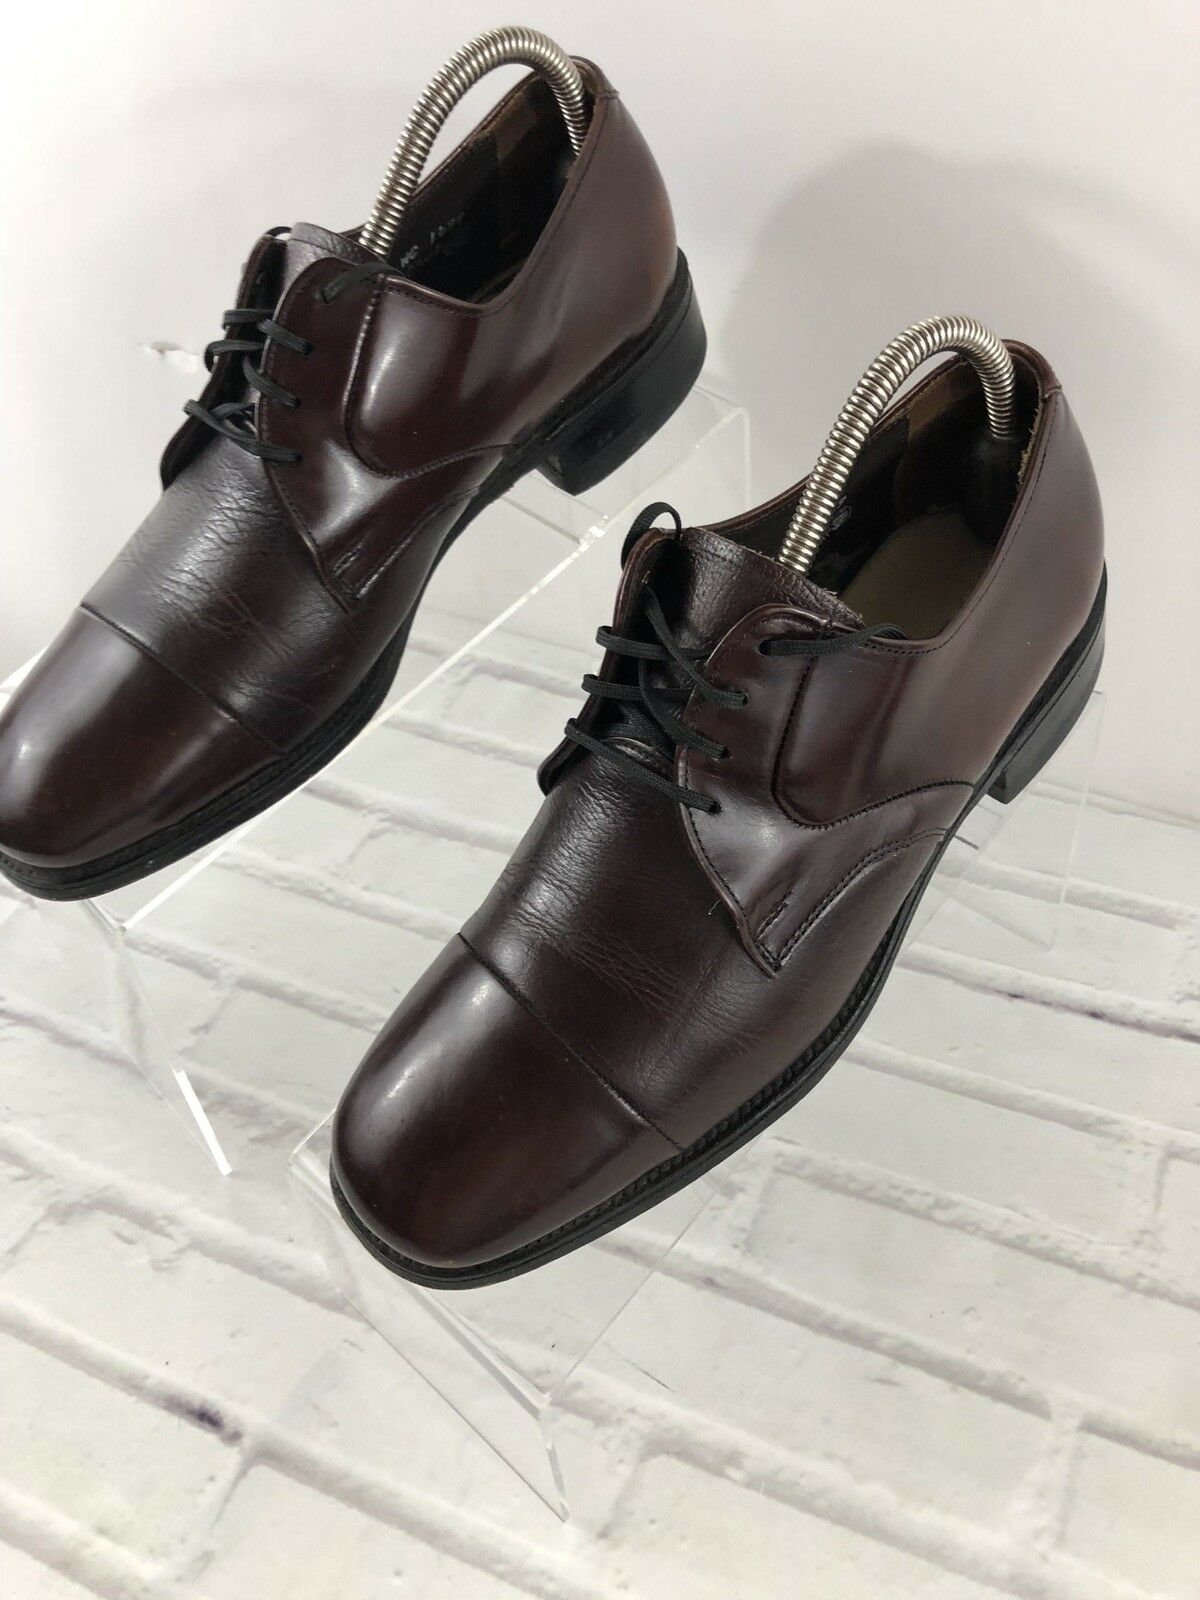 Roblee Men's Brown Leather Oxford Dress shoes Size 9 D